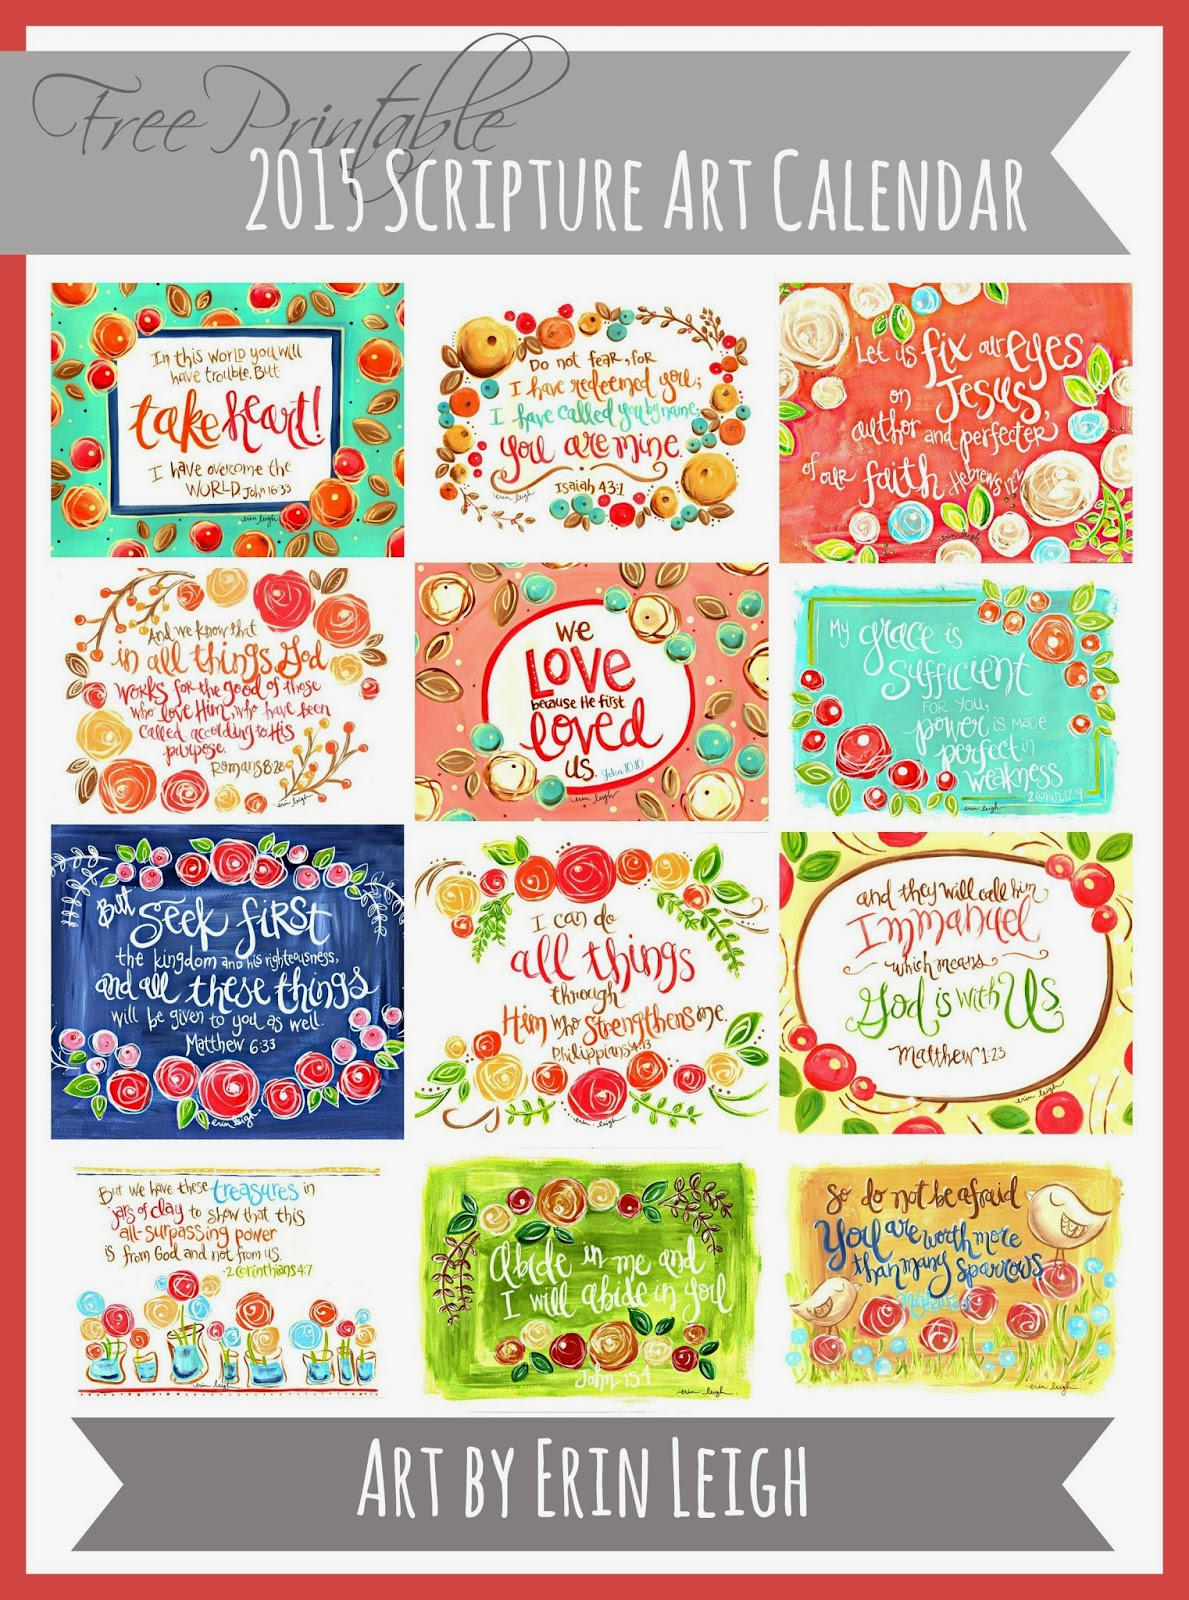 Calendar Artwork : Art by erin leigh free printable scripture